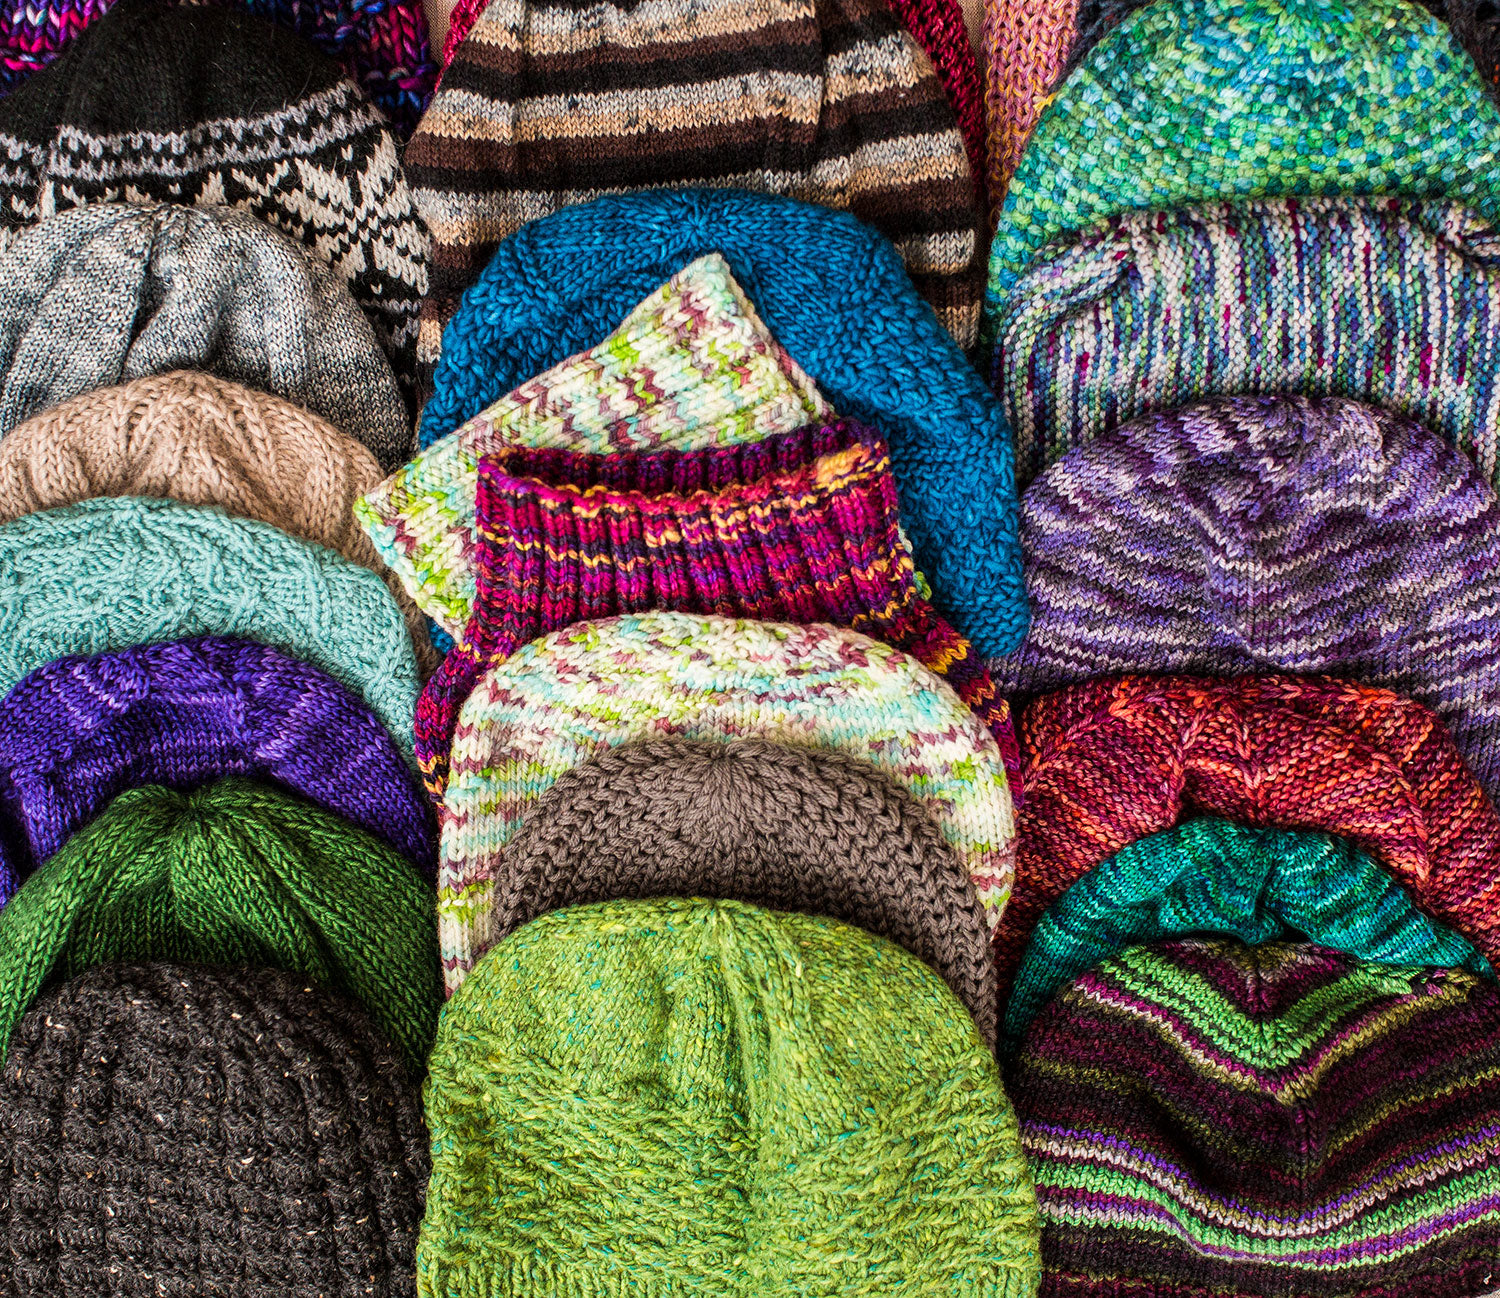 Hats knitted by the TOM BIHN Ravelry group for the TOM BIHN Crew